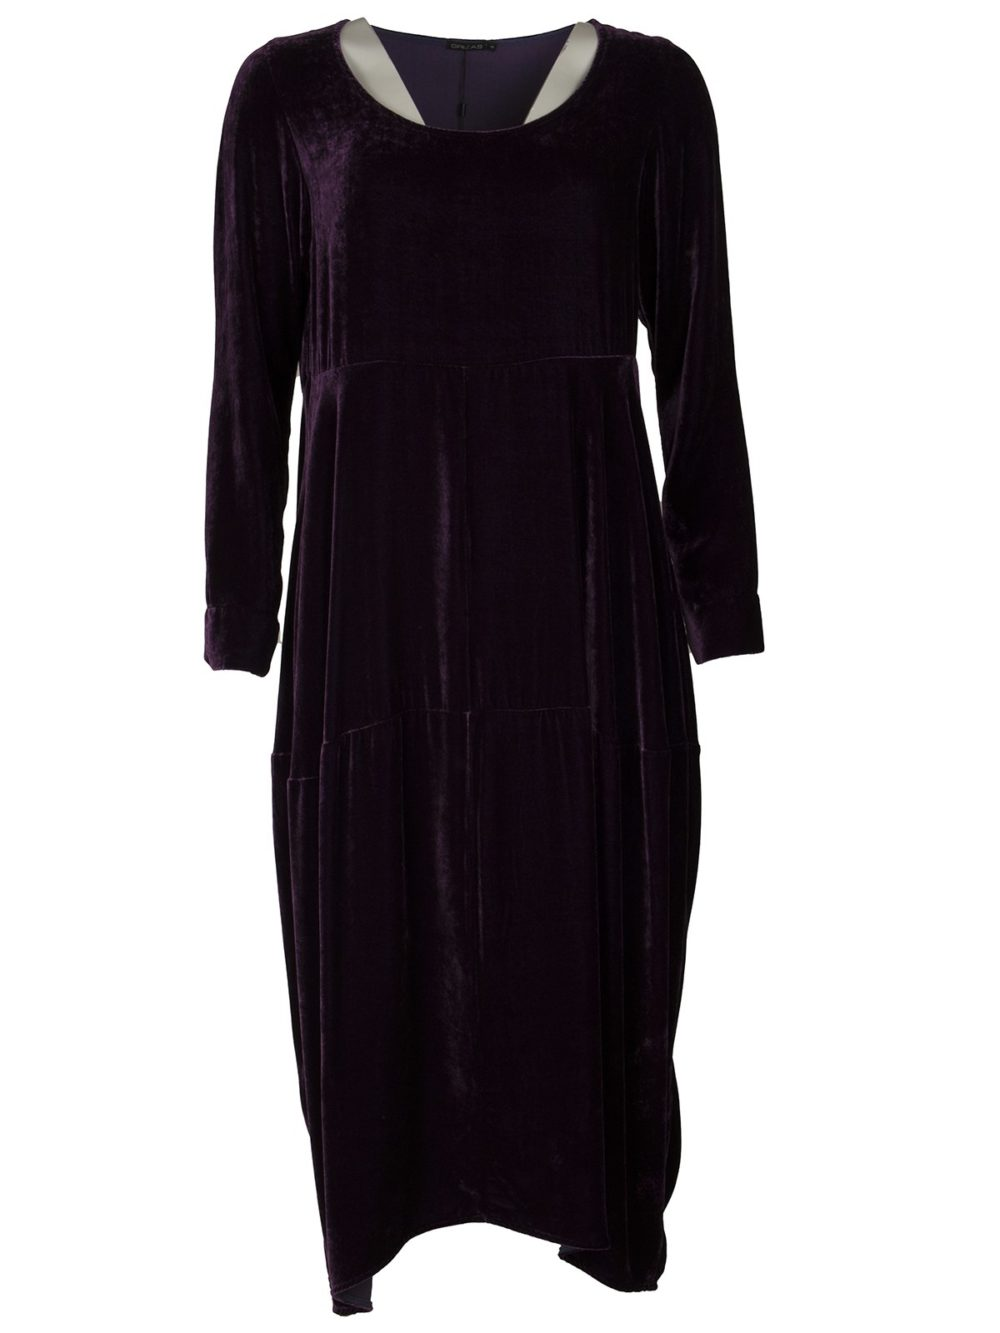 Dress 9405-XN Grizas Katie Kerr Women's Clothing